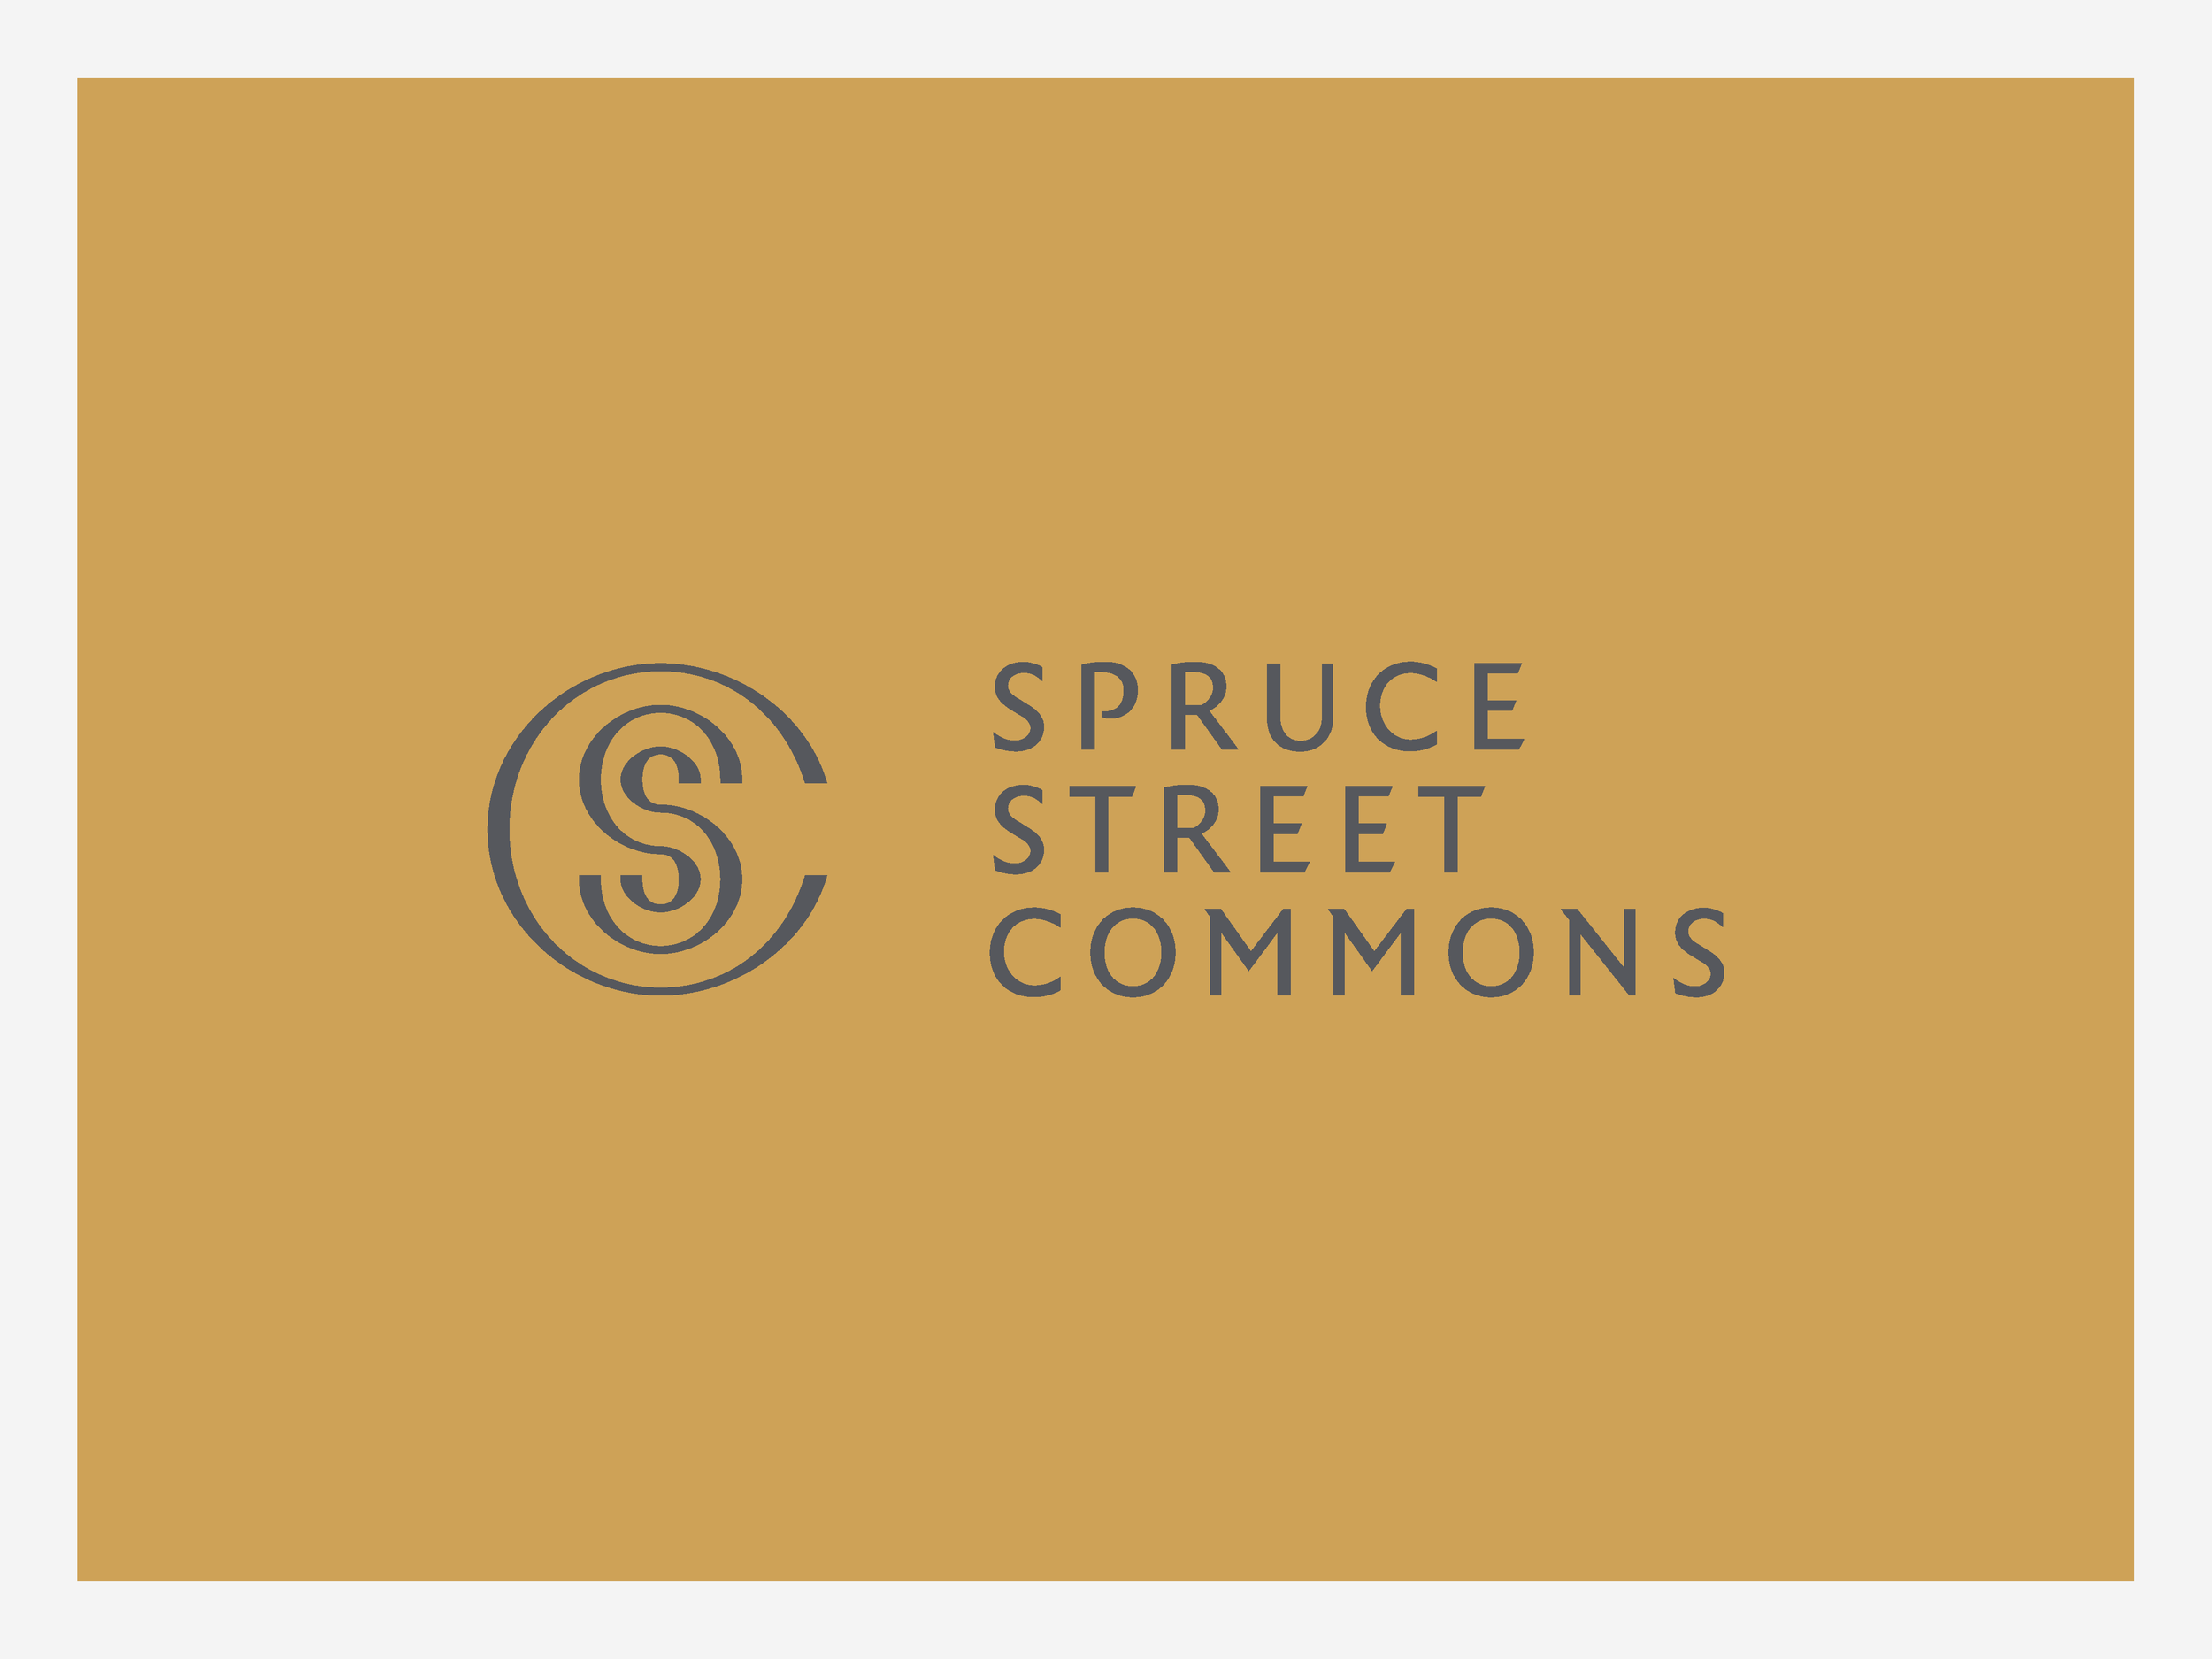 31 Spruce Street Commons logo lockup.png